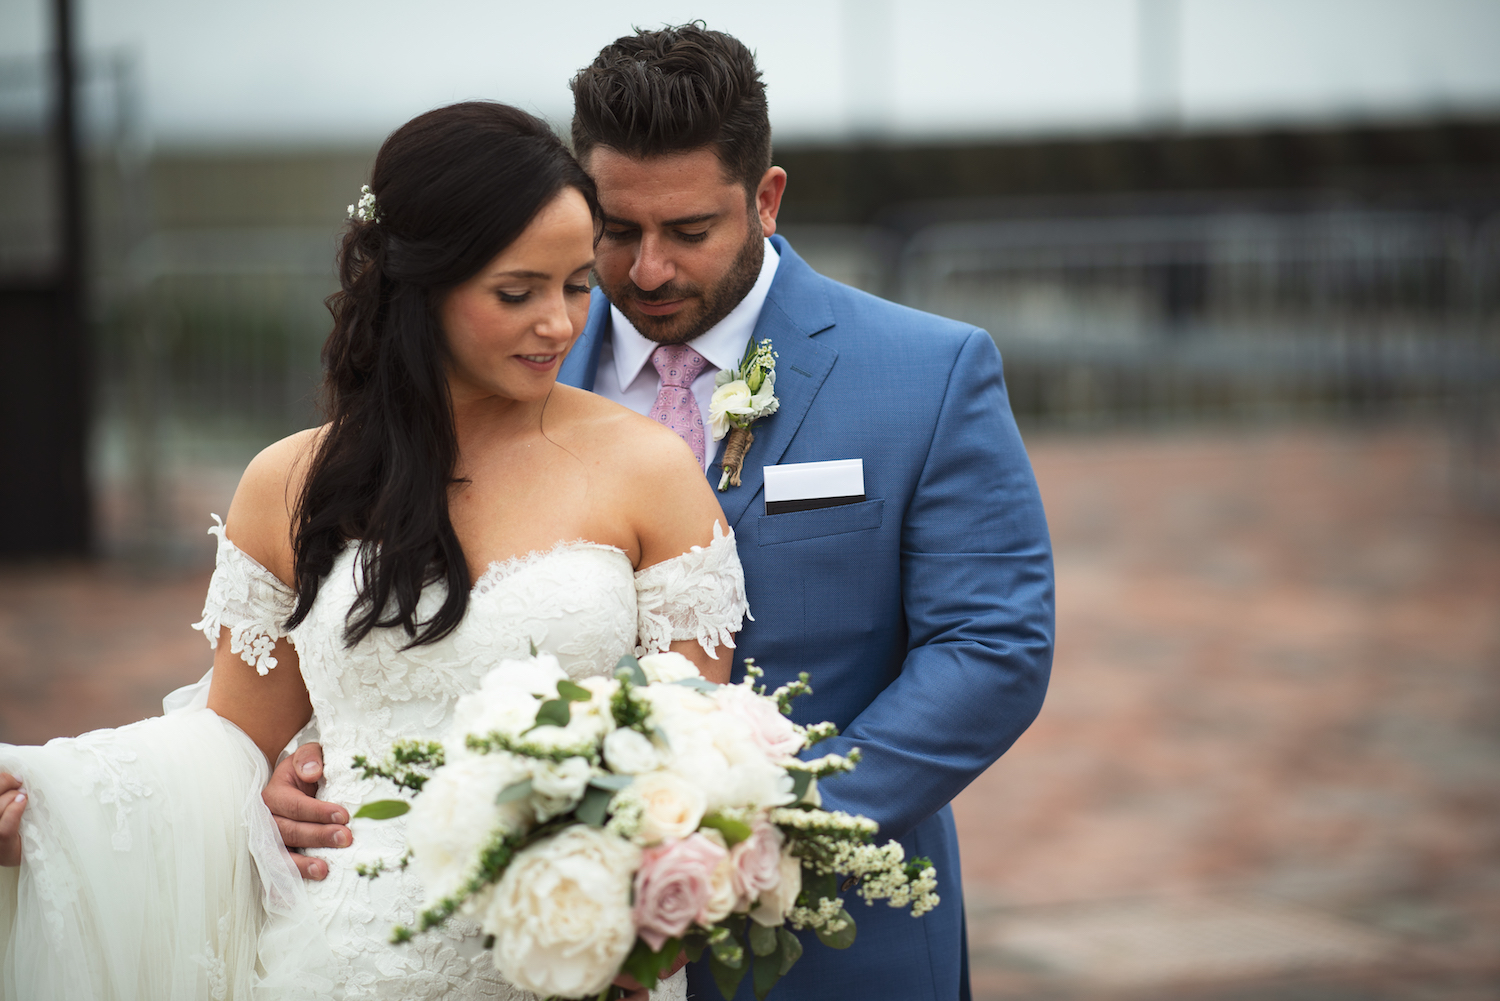 Denise and Jason – Wedding Photo Highlights from Maritime Parc in Jersey City, NJ